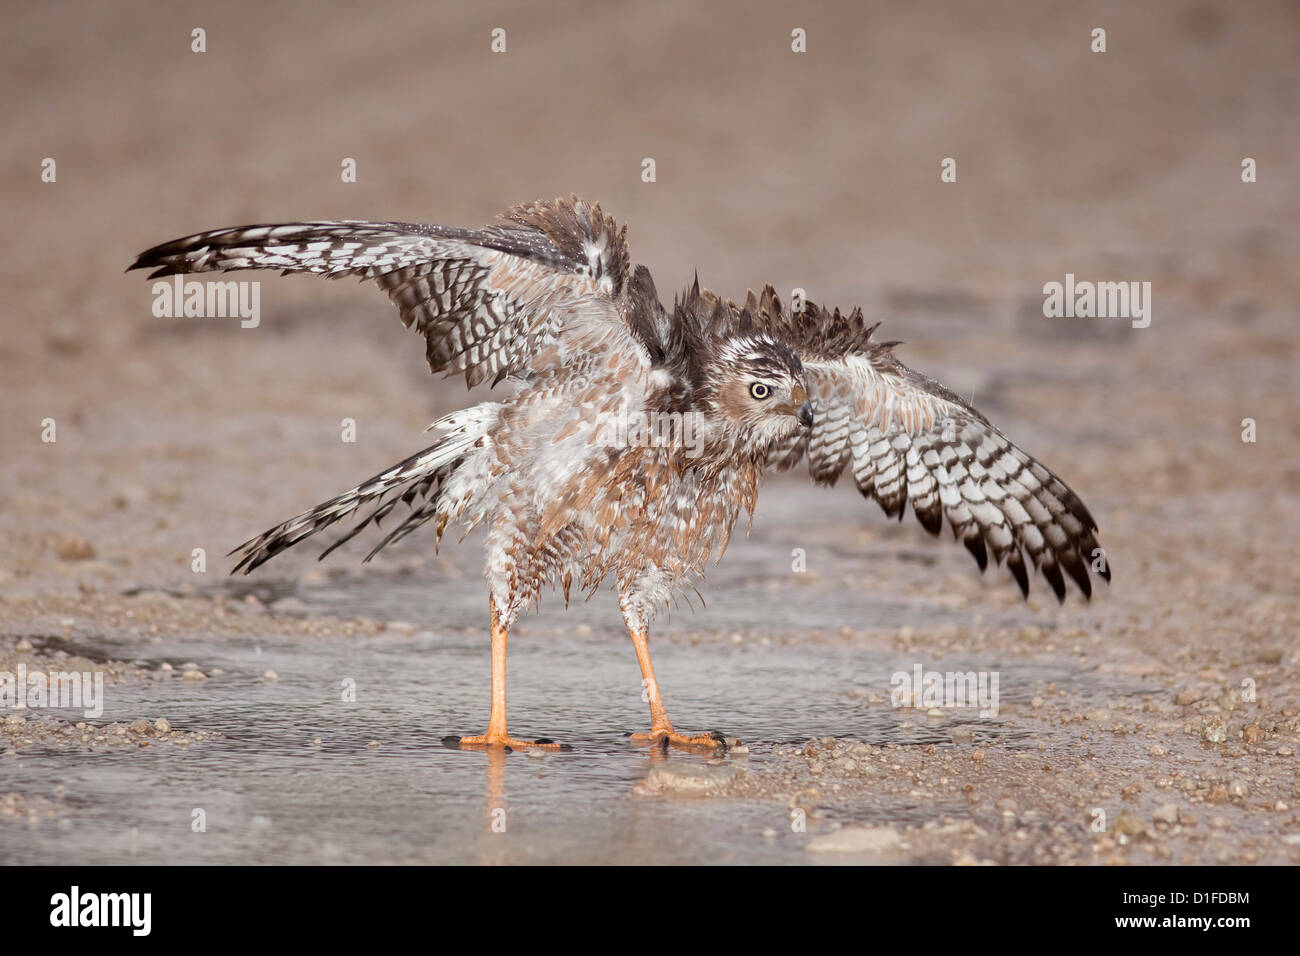 Immature Southern Pale Chanting Goshawk (Melierax canorus) bathing after rain, Kgalagadi Transfrontier Park, South - Stock Image